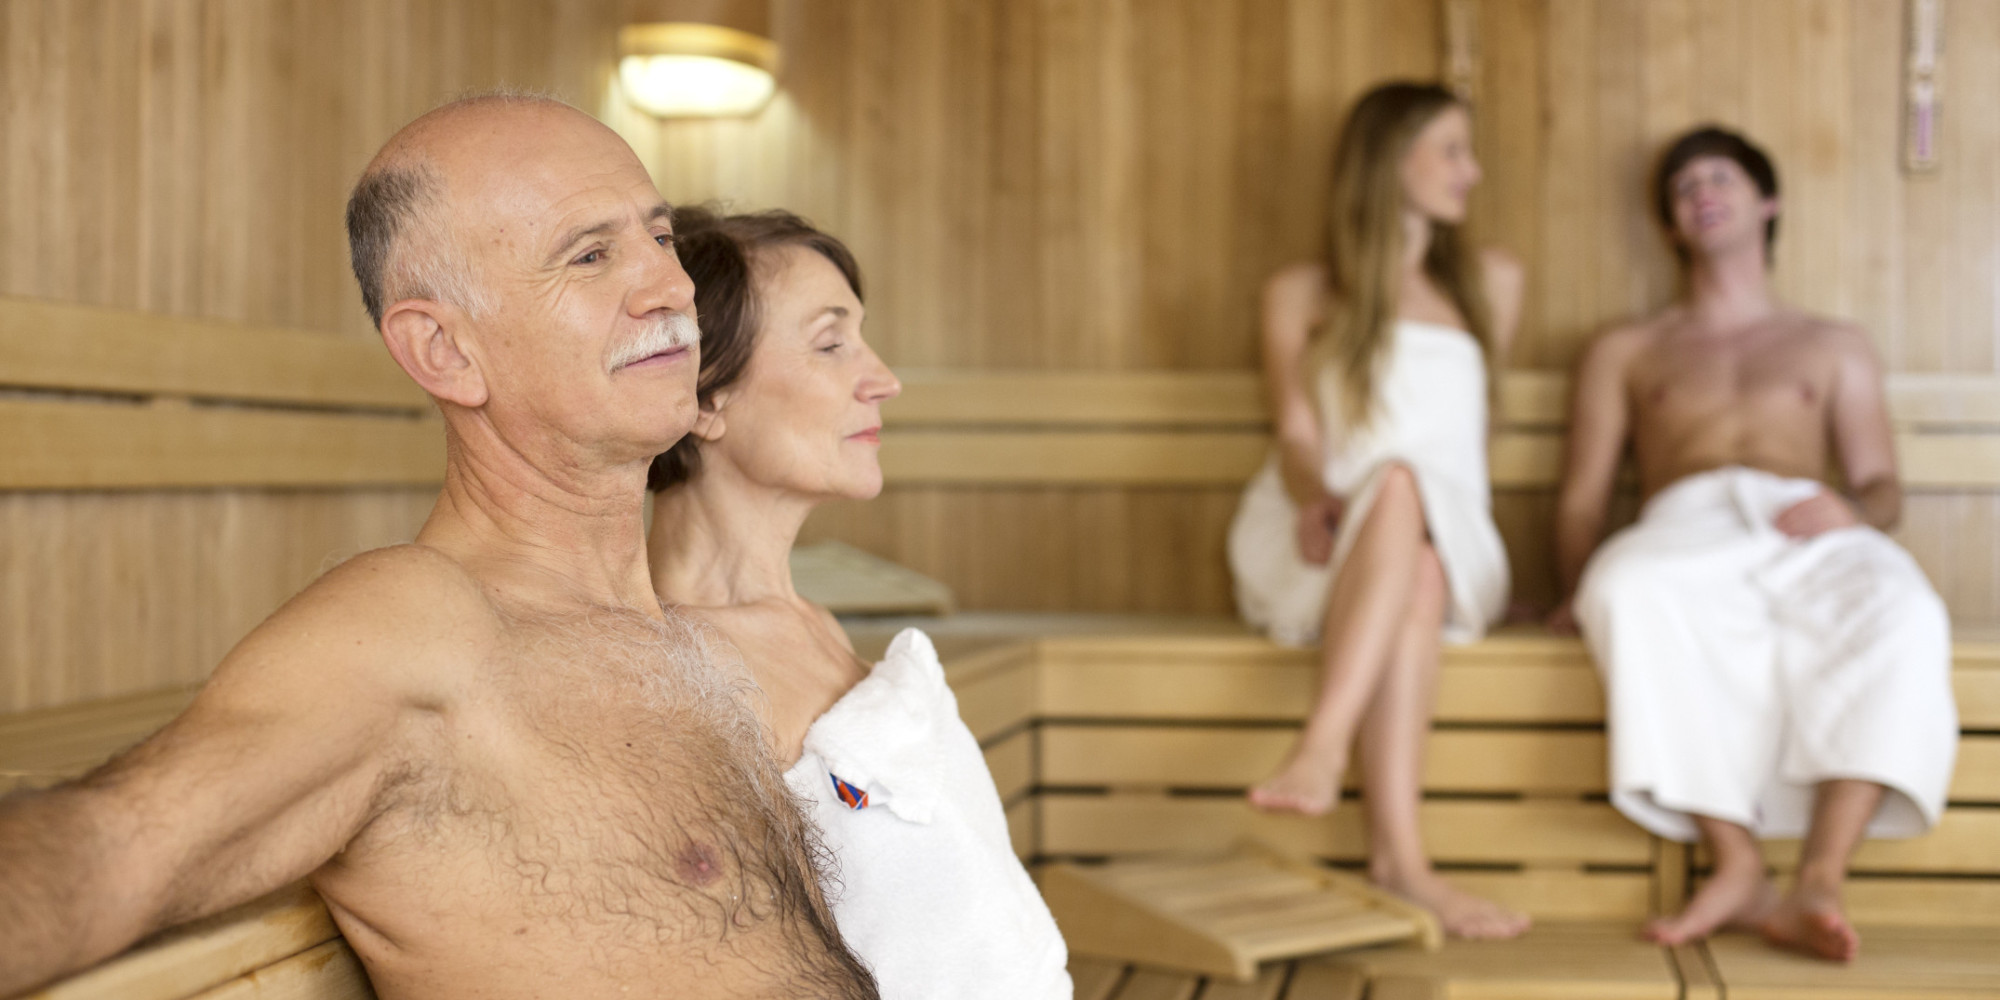 Family nudist sauna